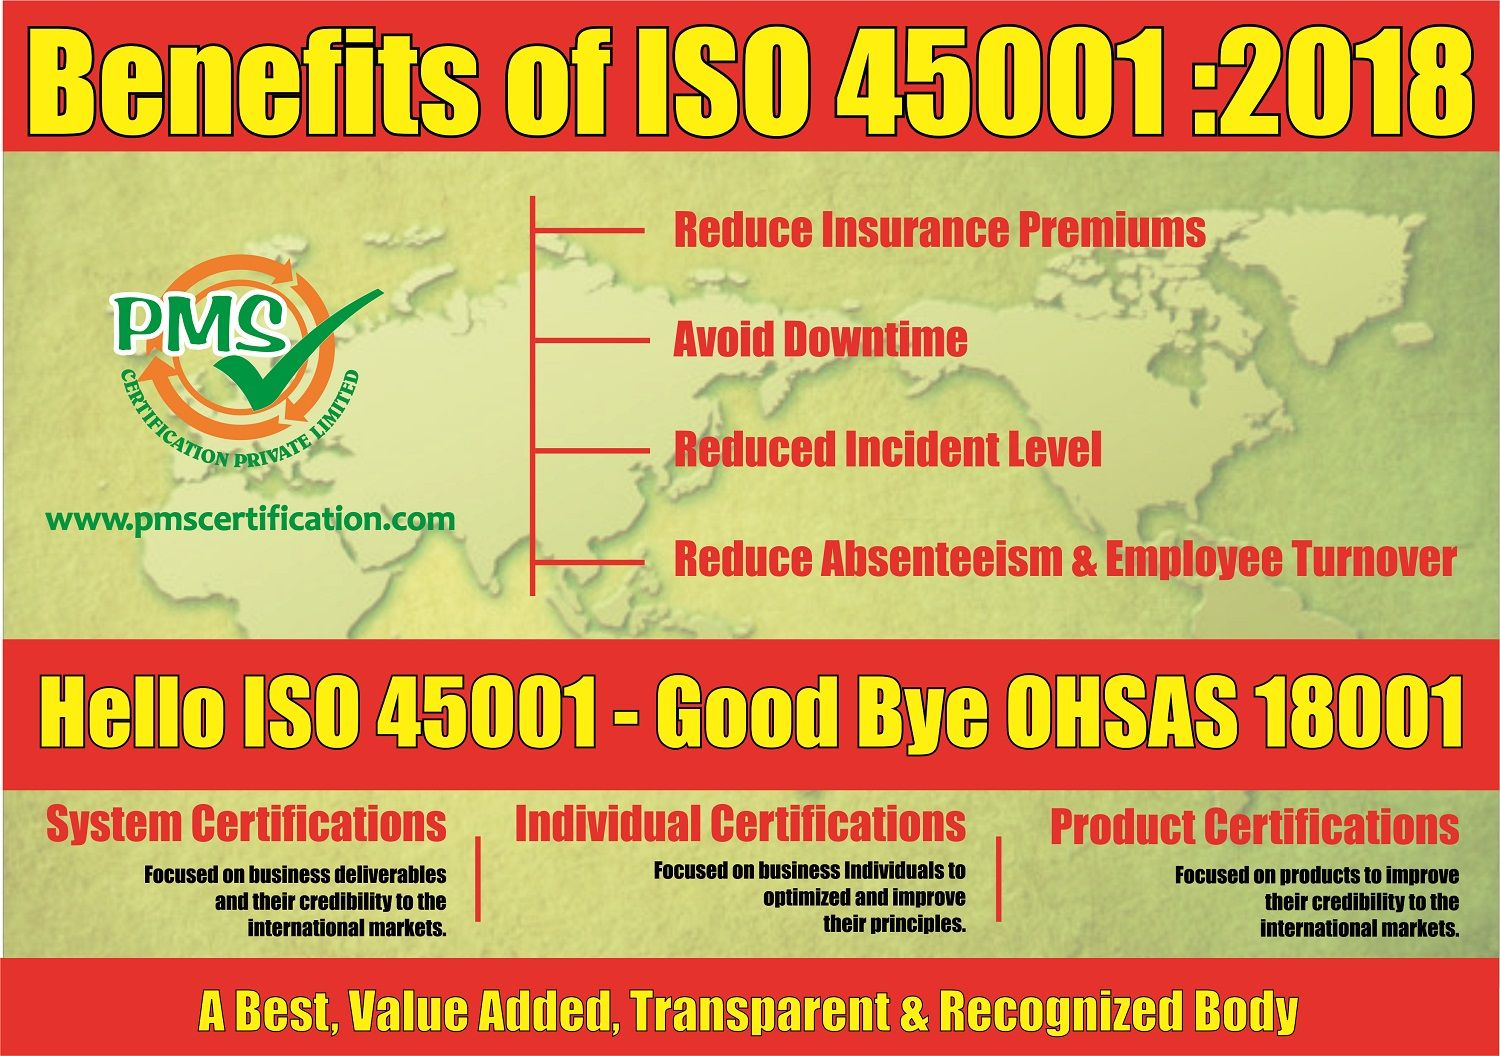 ISO has developed a new standard, ISO 45001, Occupational